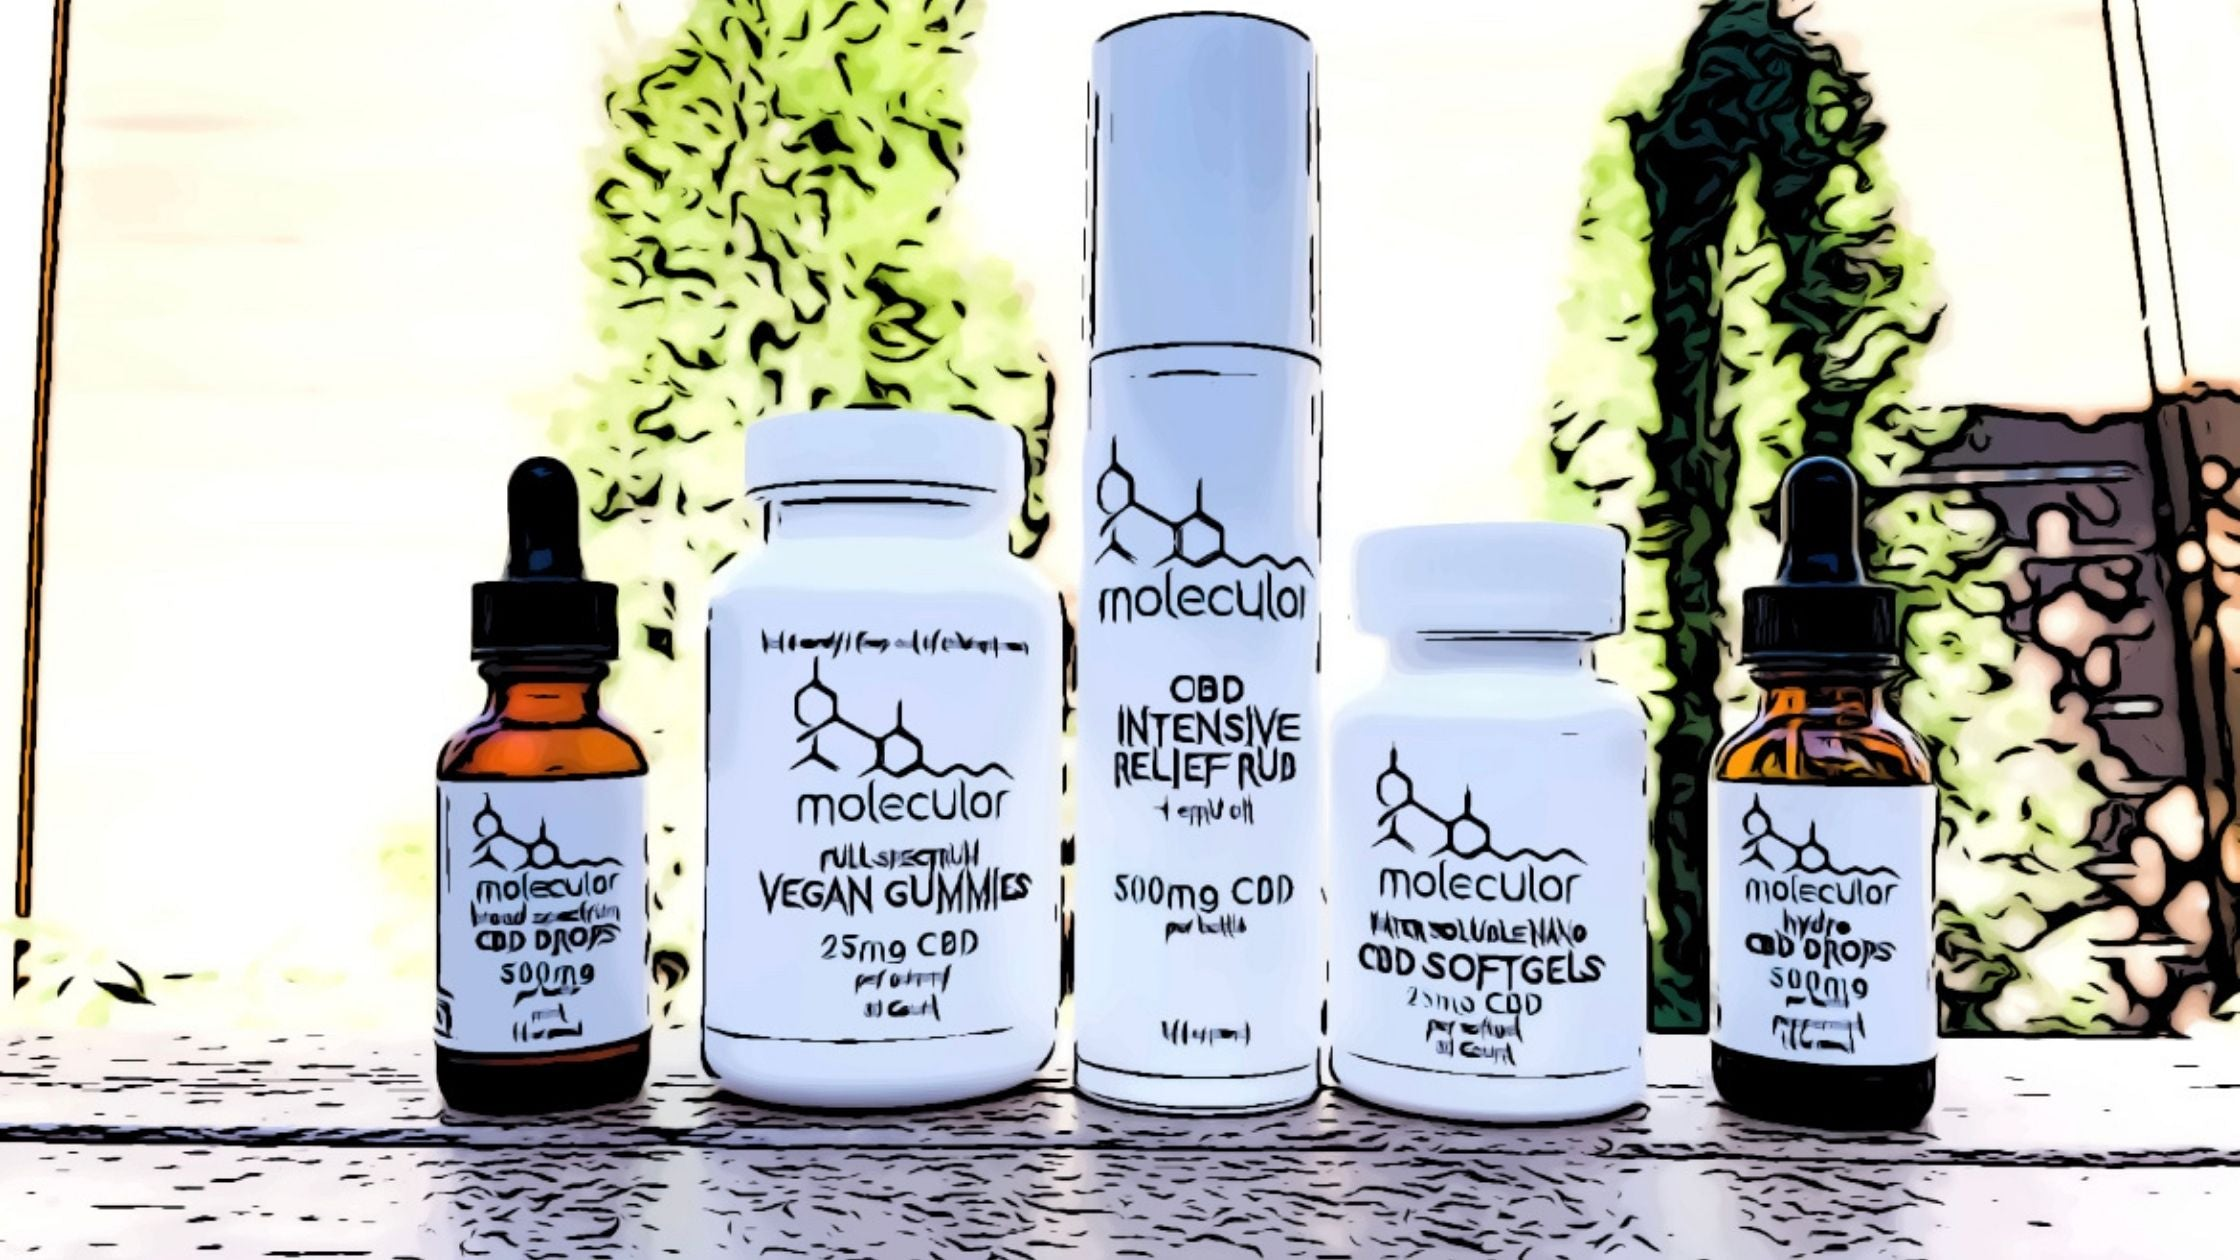 Molecular CBD Shop Wellness Products